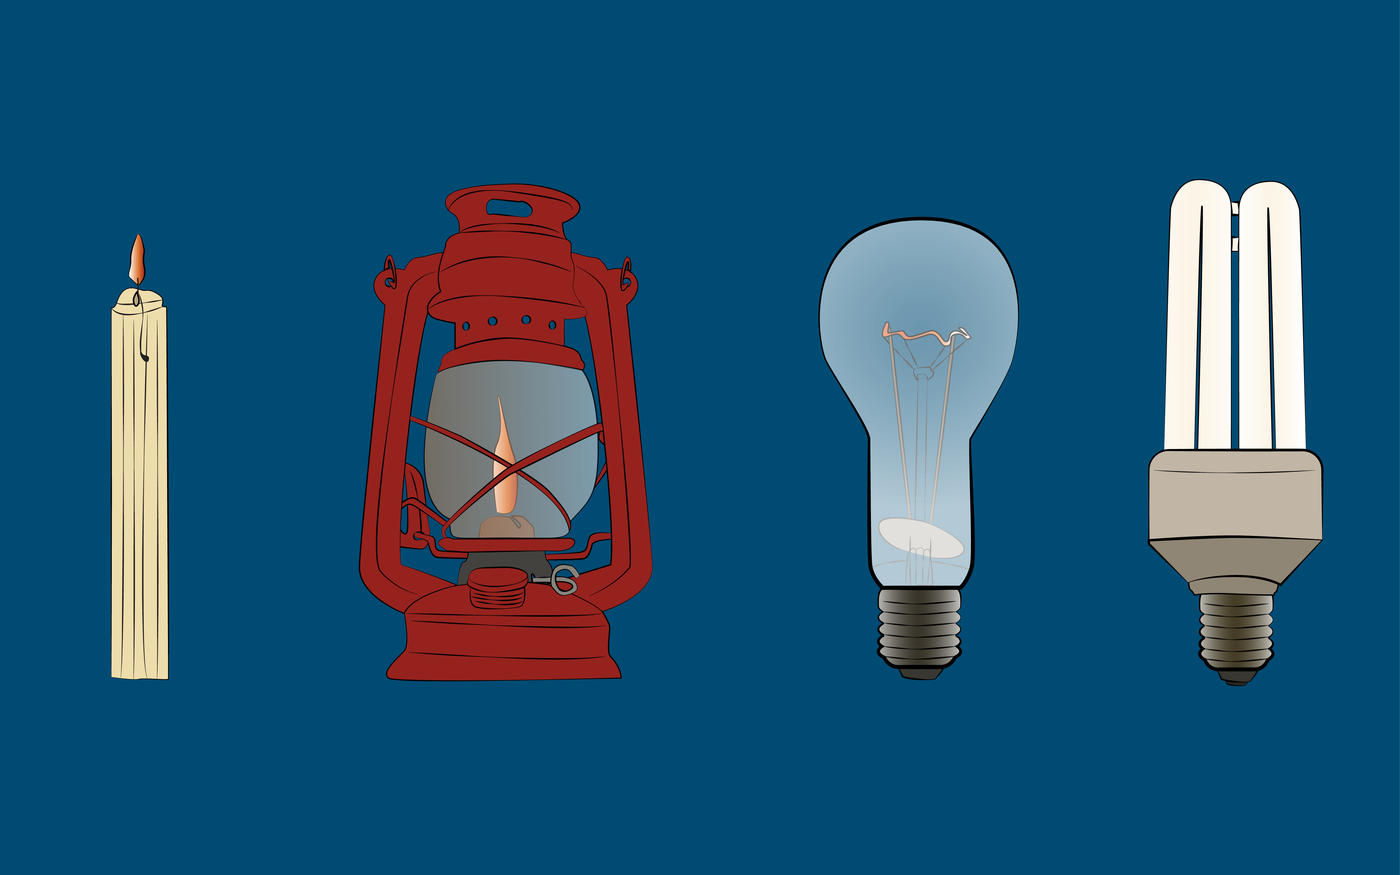 Blue background. Candle. Oil lamp. Light bulb. Newer light bulb.